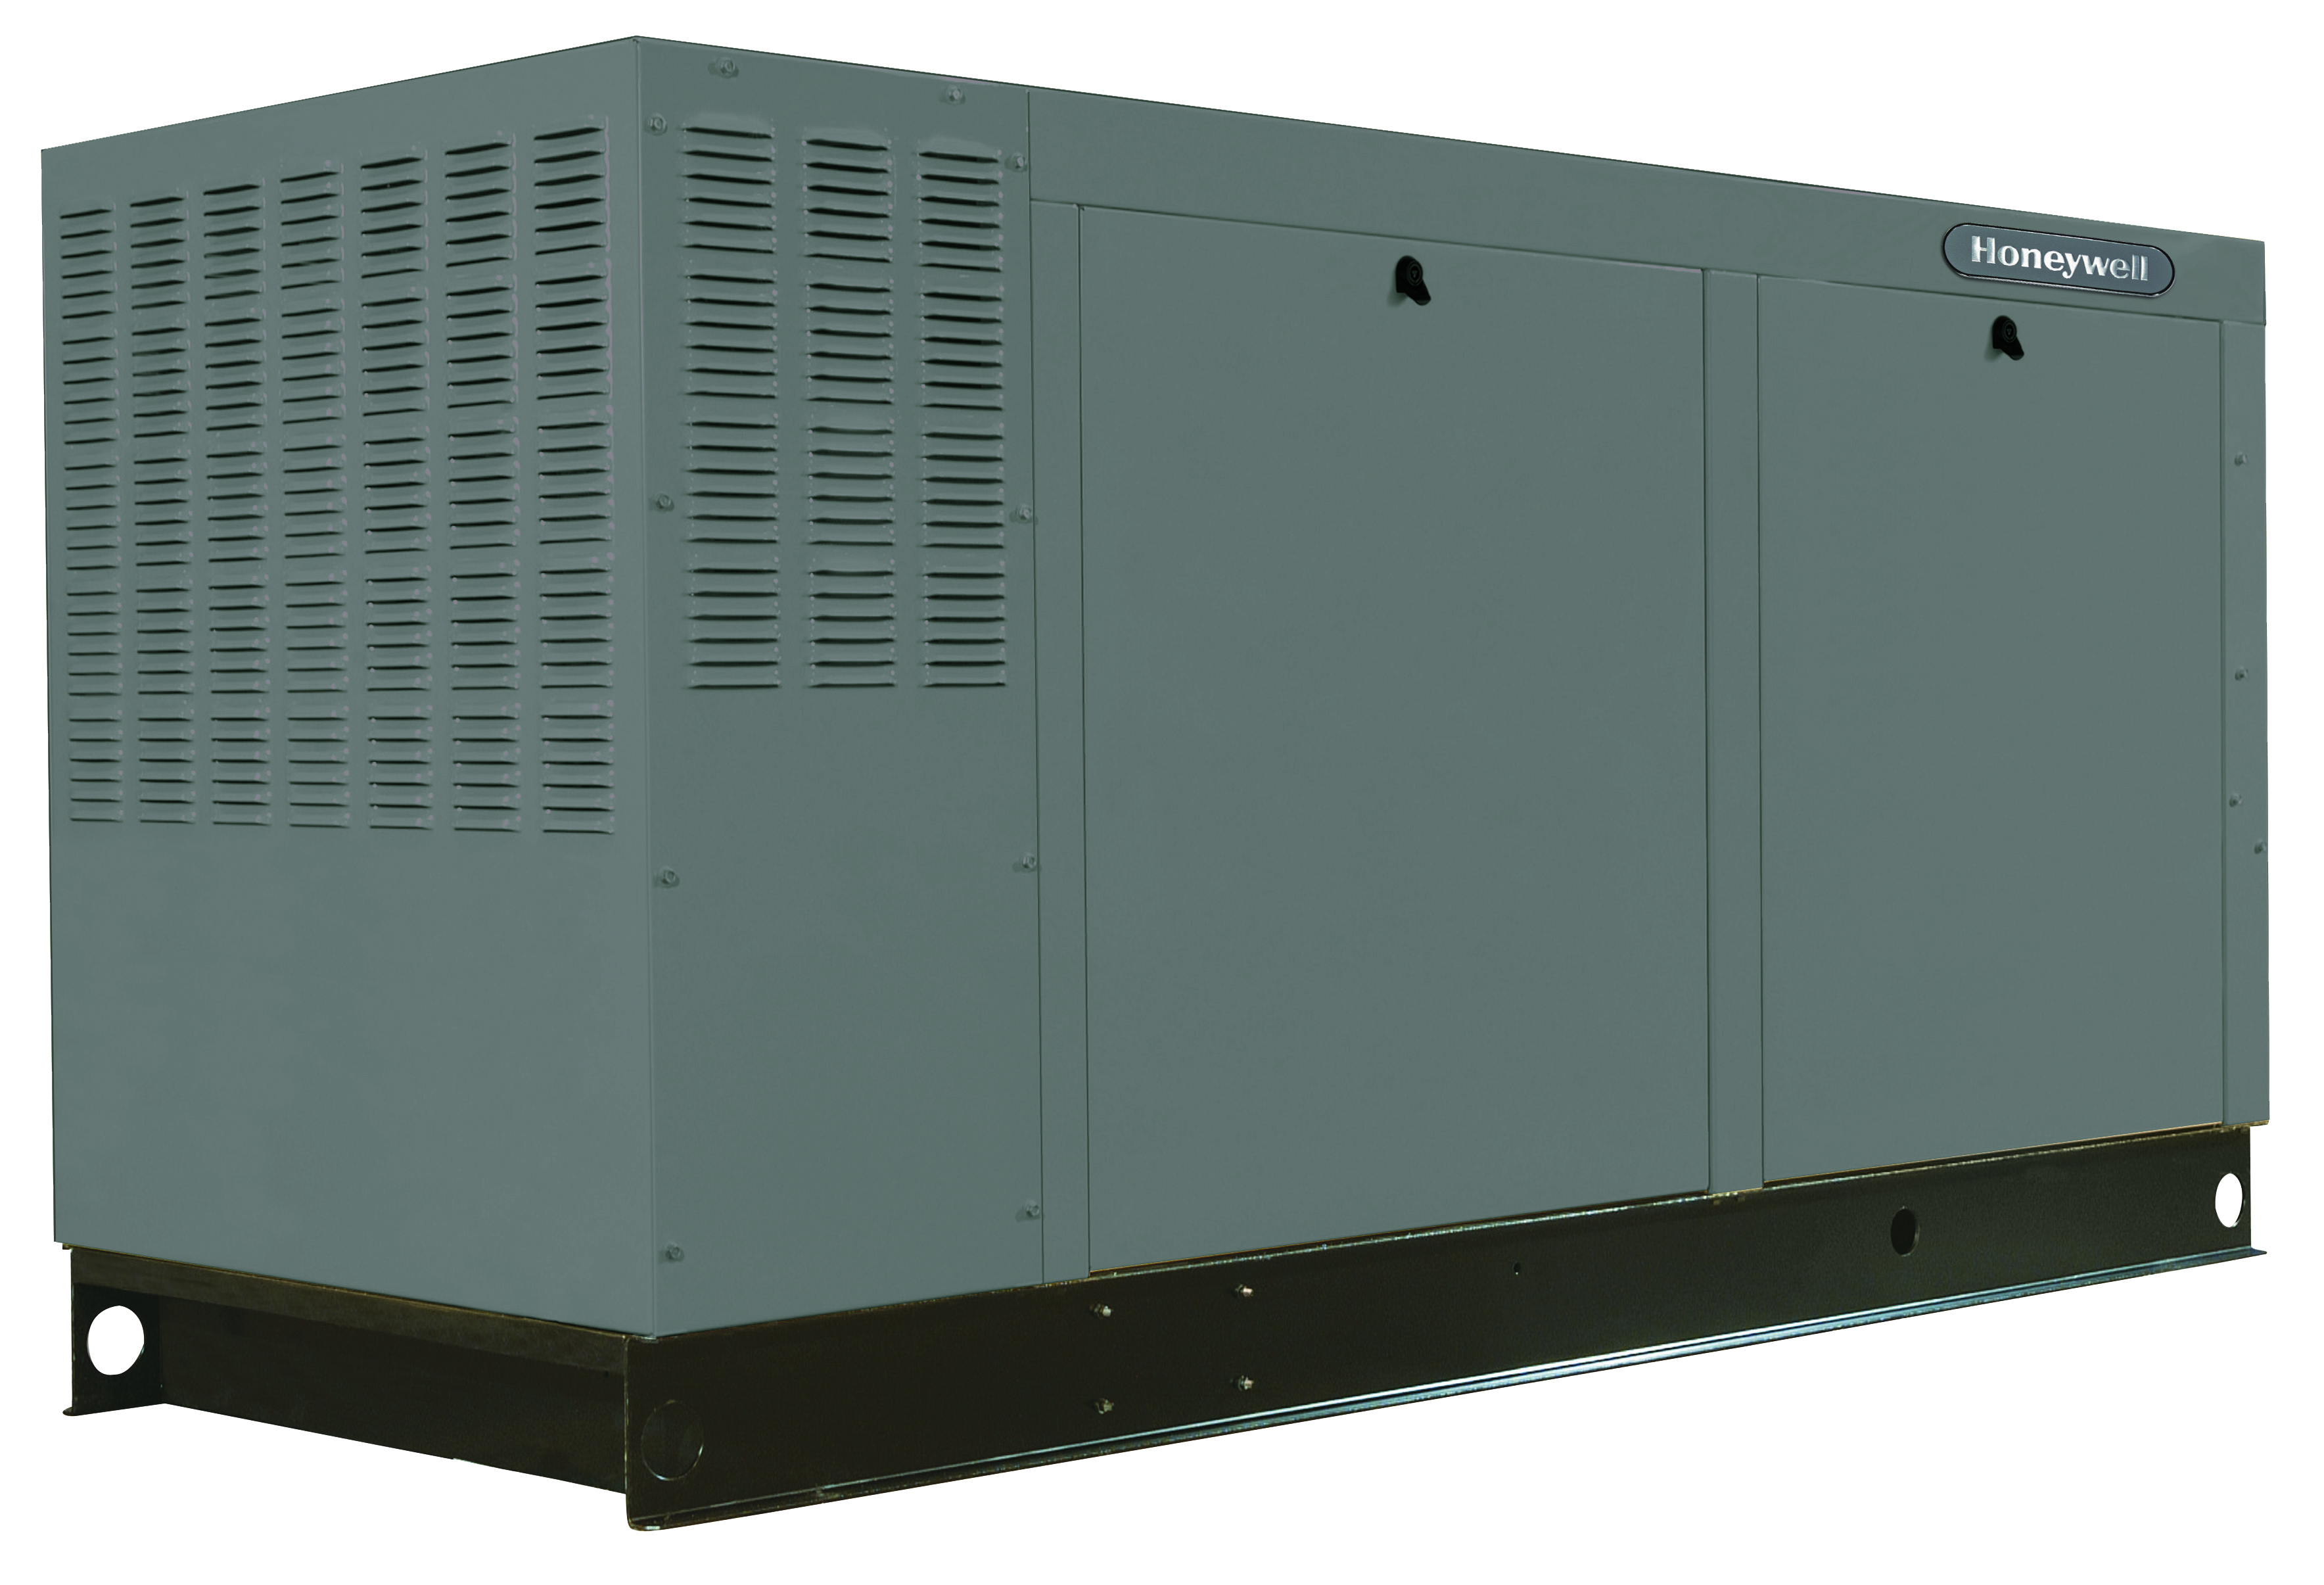 Honeywell 70kW Home Generator